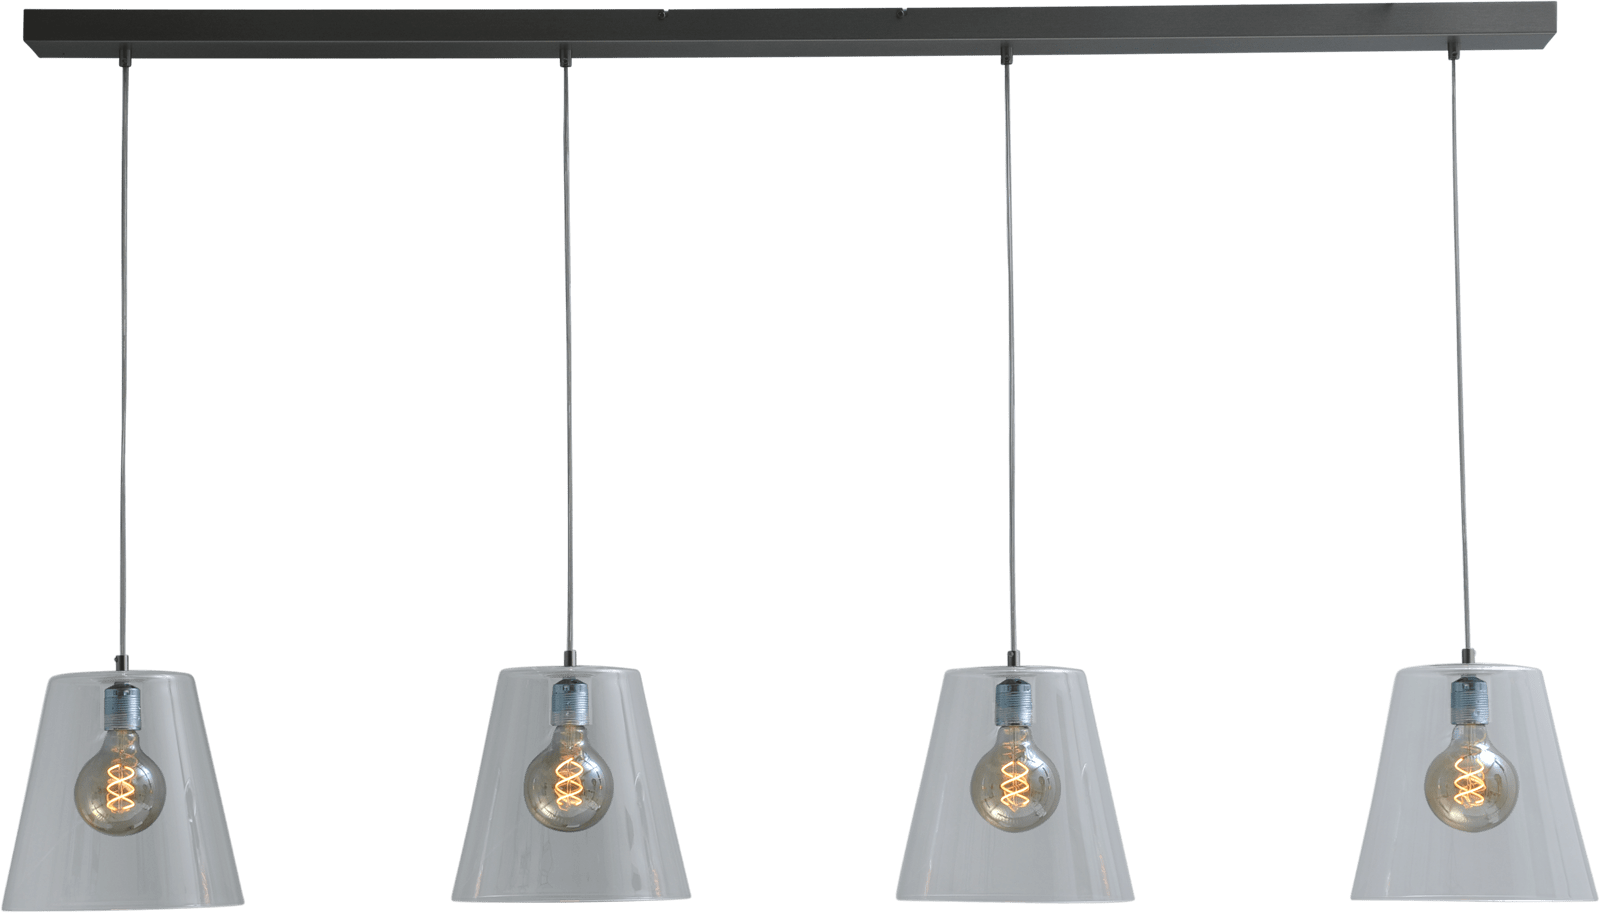 Baldi HL BALDI NICKEL 4LIGHT BEAM 160X8CM E27